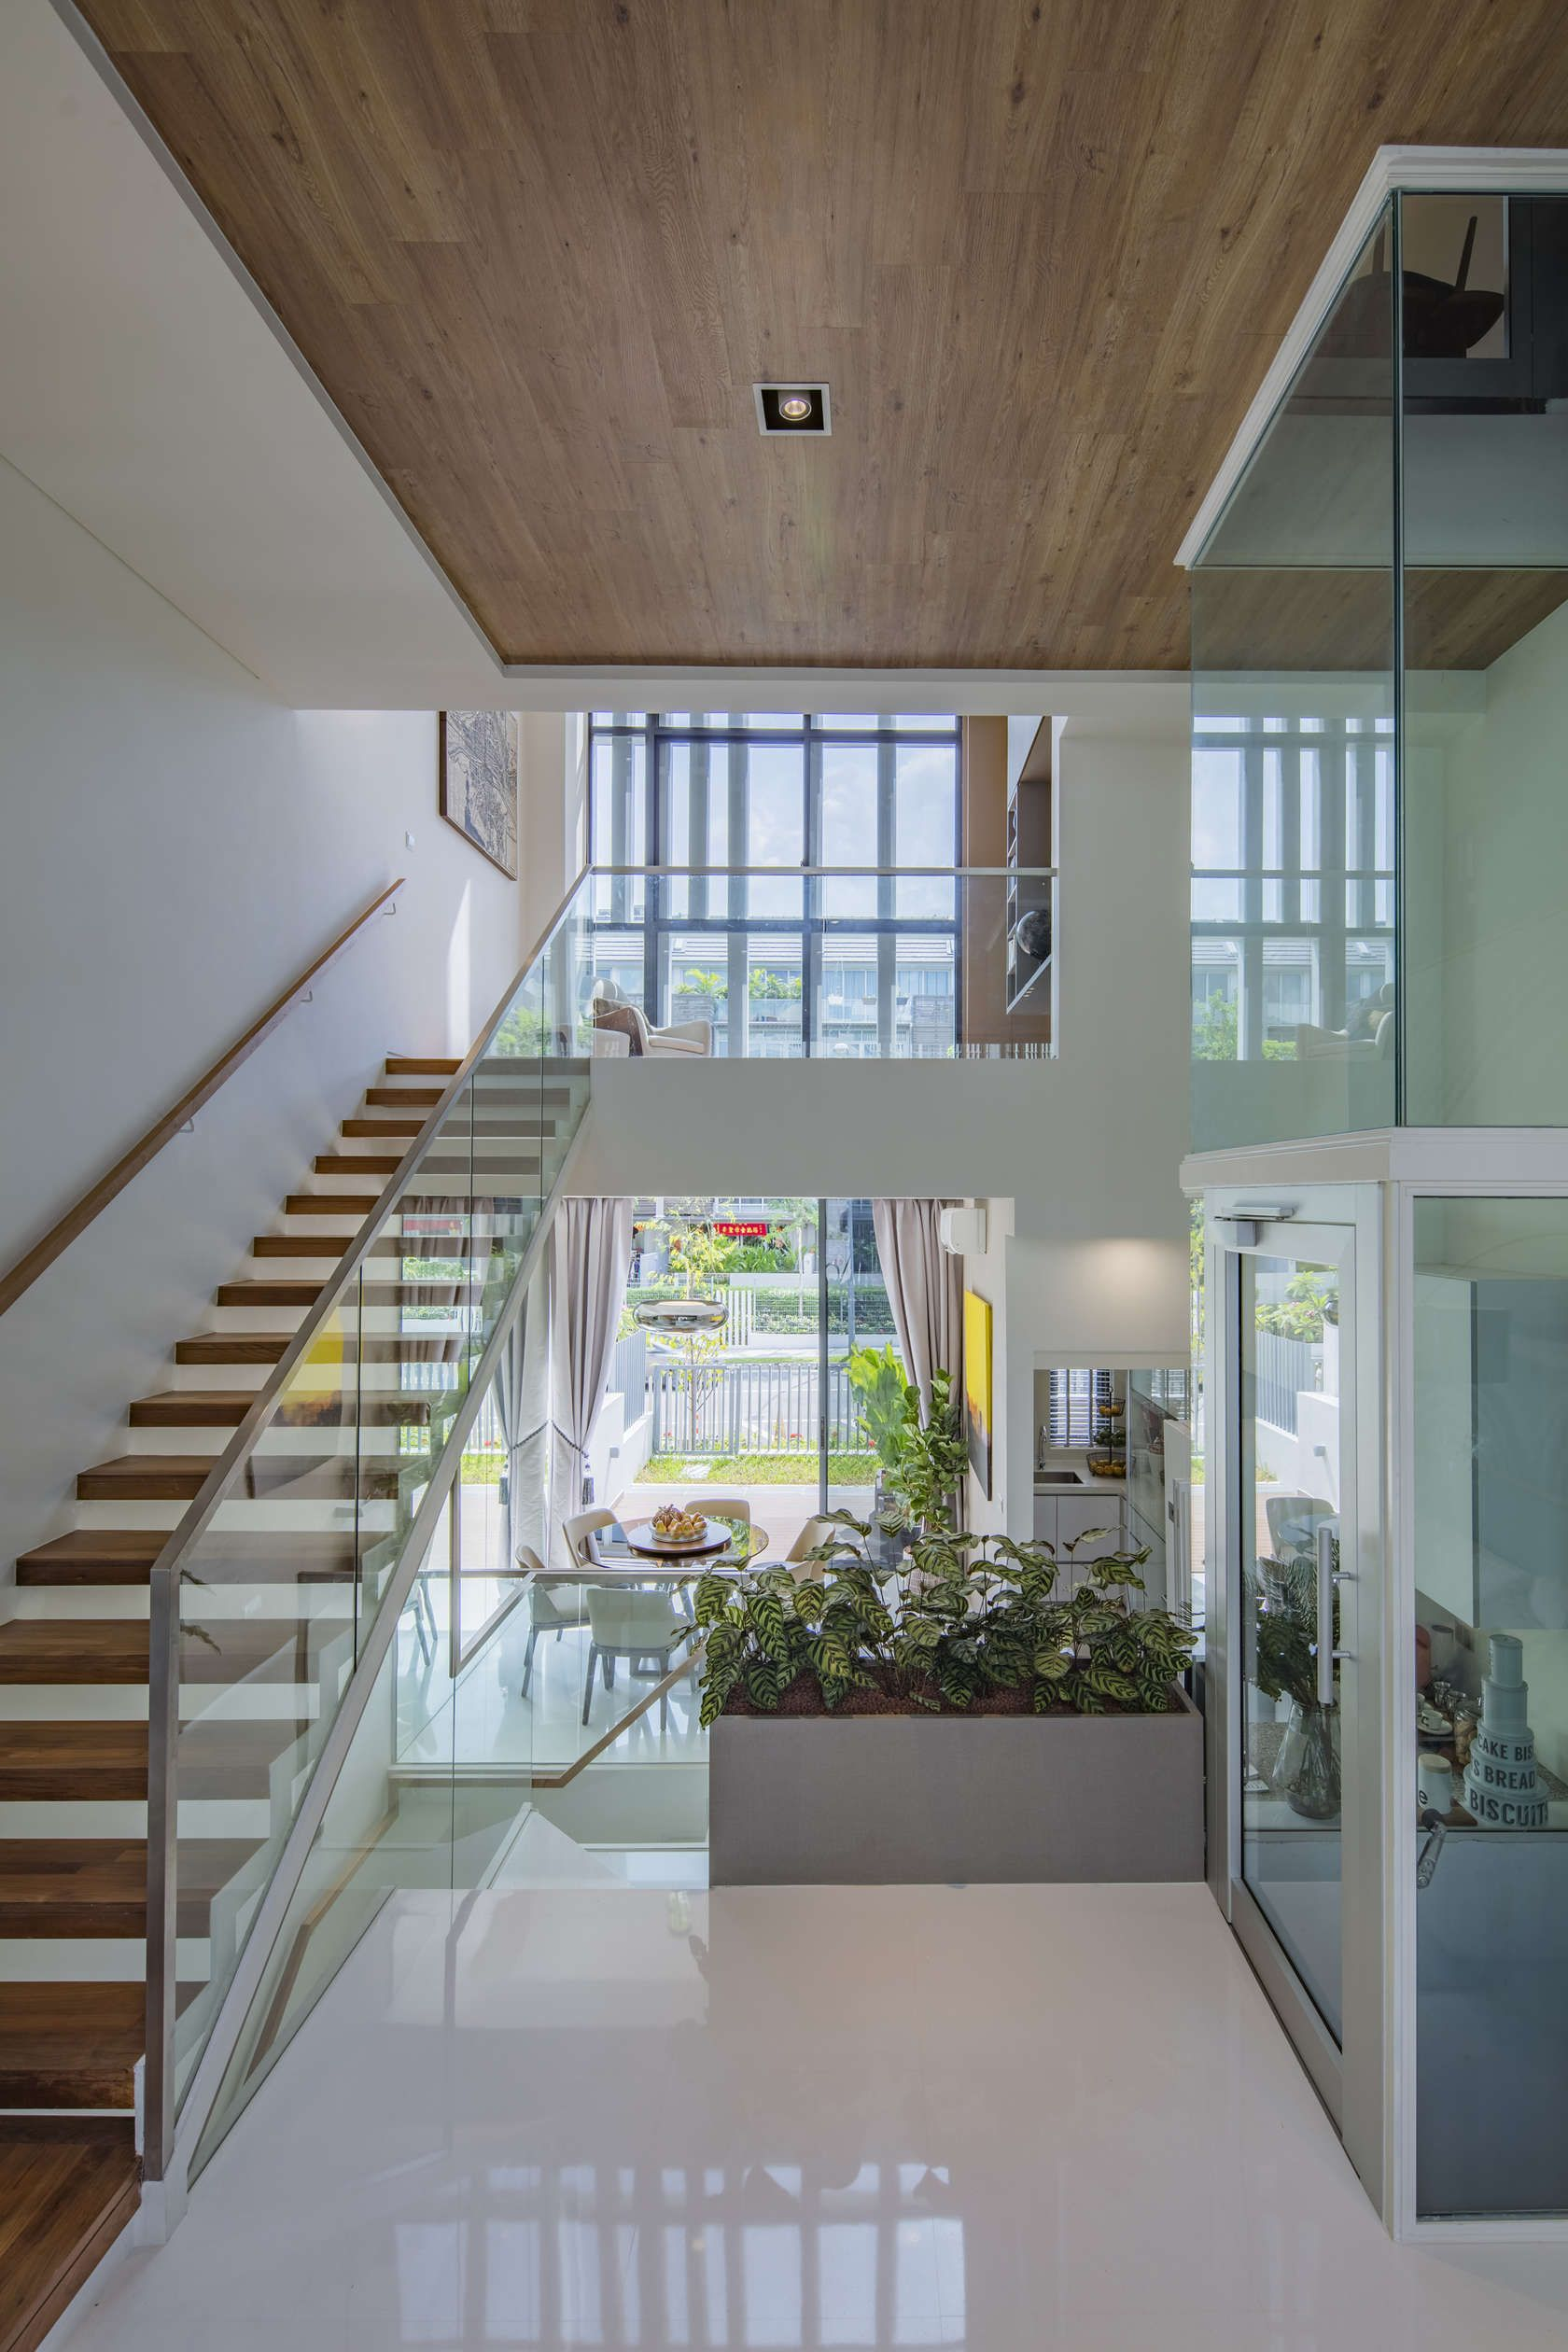 Designed by Singapore-based architects AD LAB Pte Ltd, Charlton 27 is a 27-unit cluster terrace project in the heart of the tropical city-state. The architec...